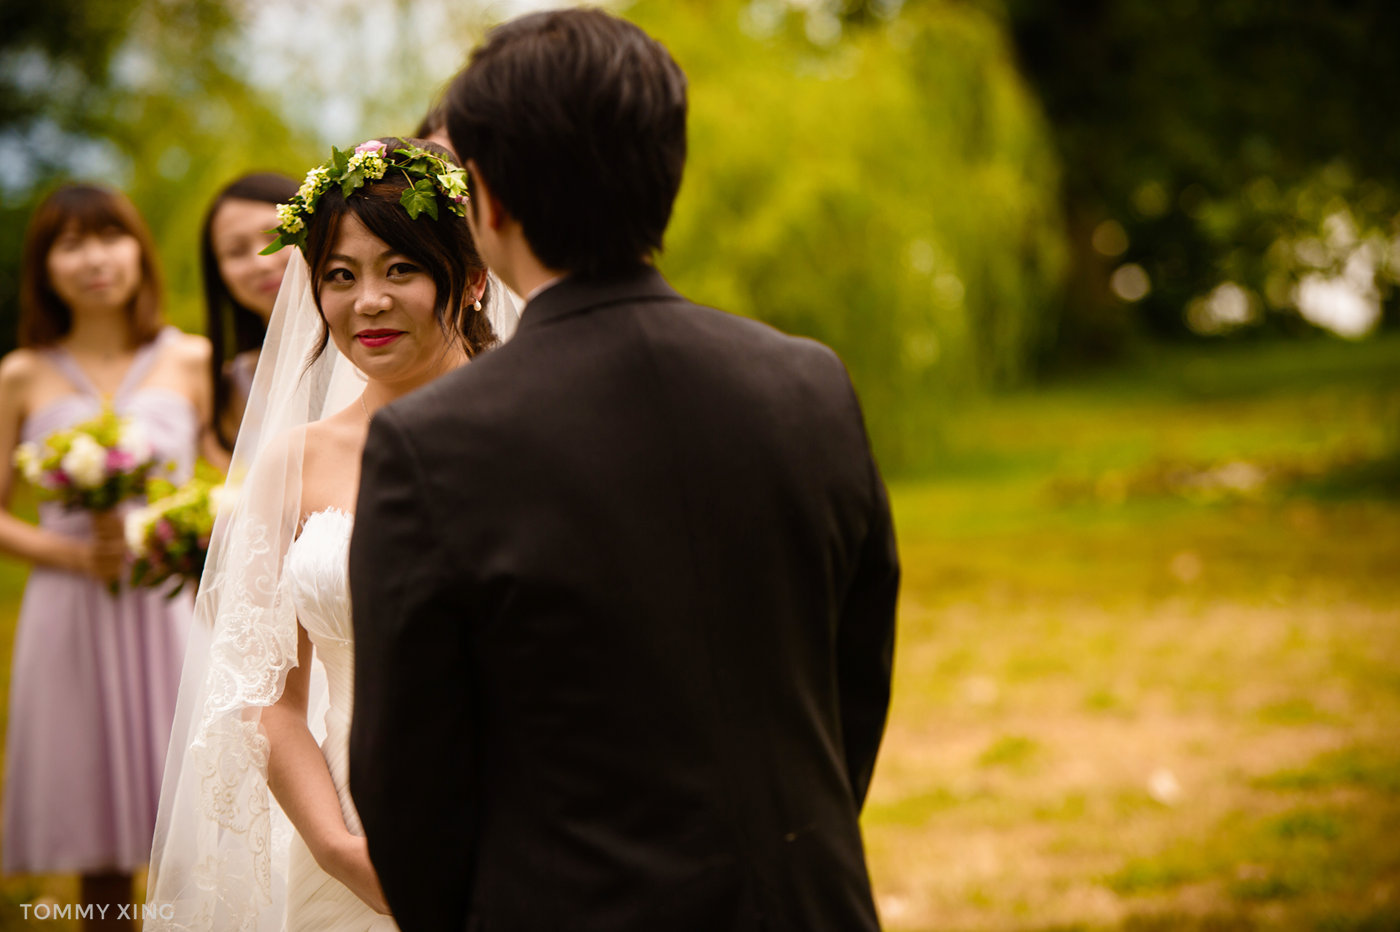 Seattle Wedding and pre wedding Los Angeles Tommy Xing Photography 西雅图洛杉矶旧金山婚礼婚纱照摄影师 095.jpg